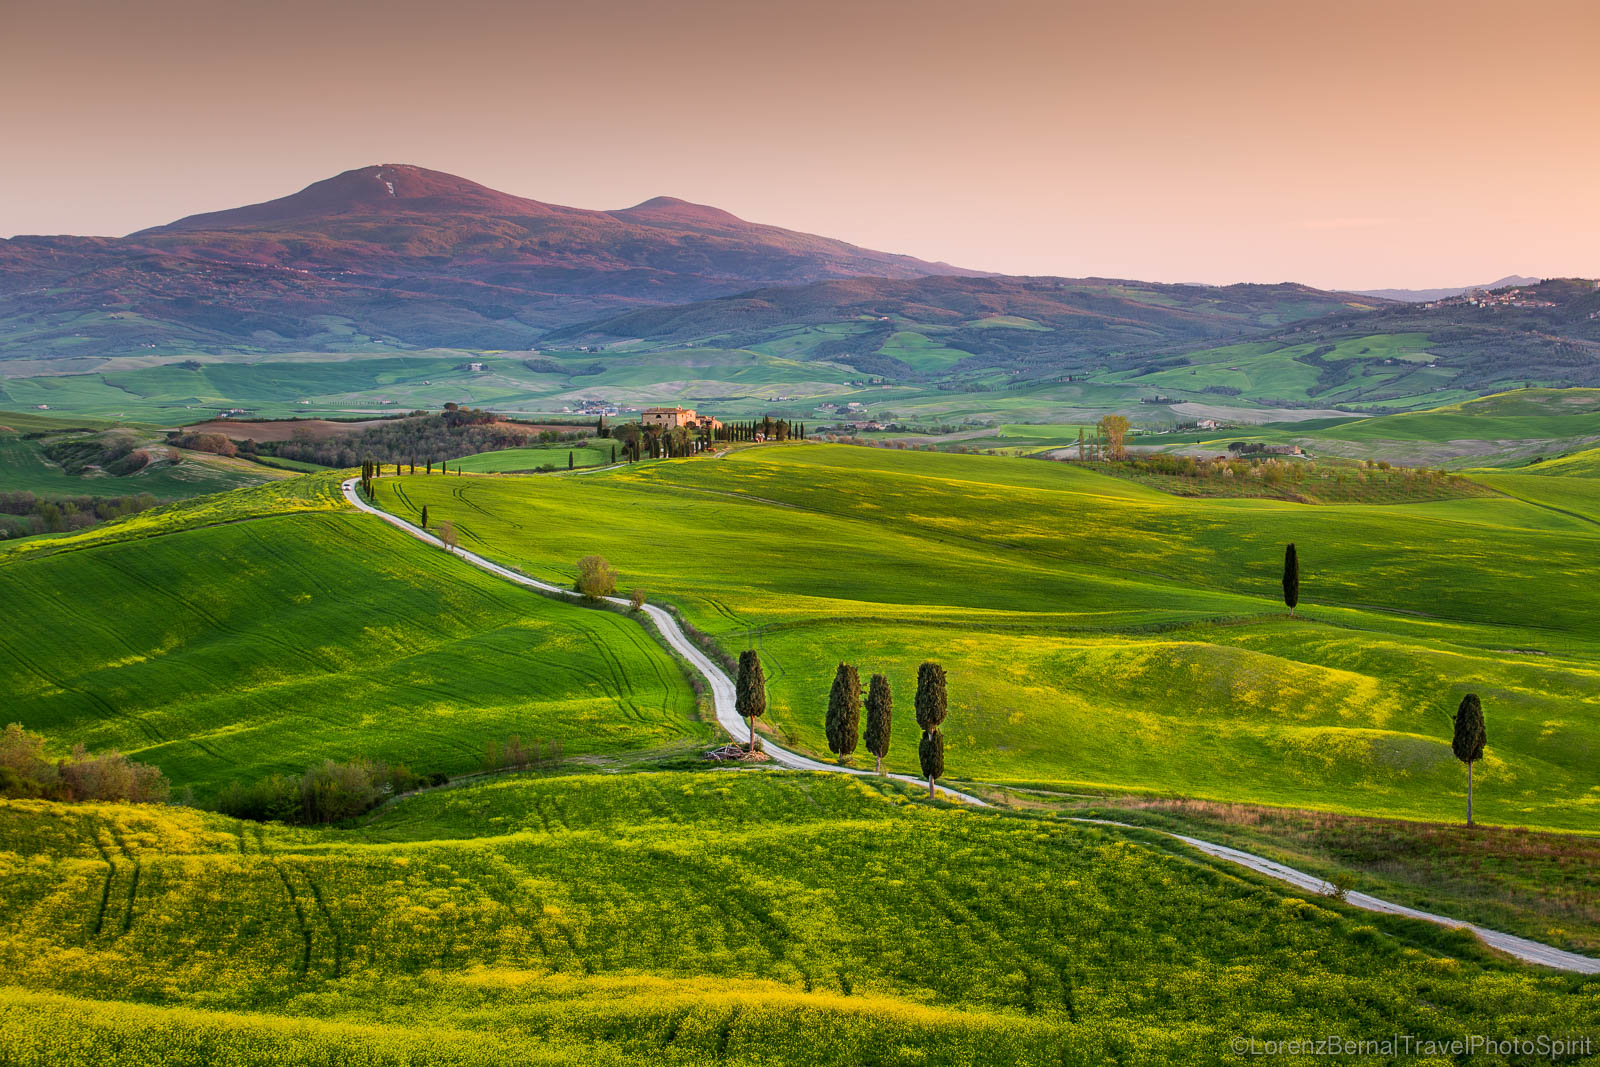 Sunset on the Val D'Orcia, with Monte Amiata in background, Tuscany, Italy.